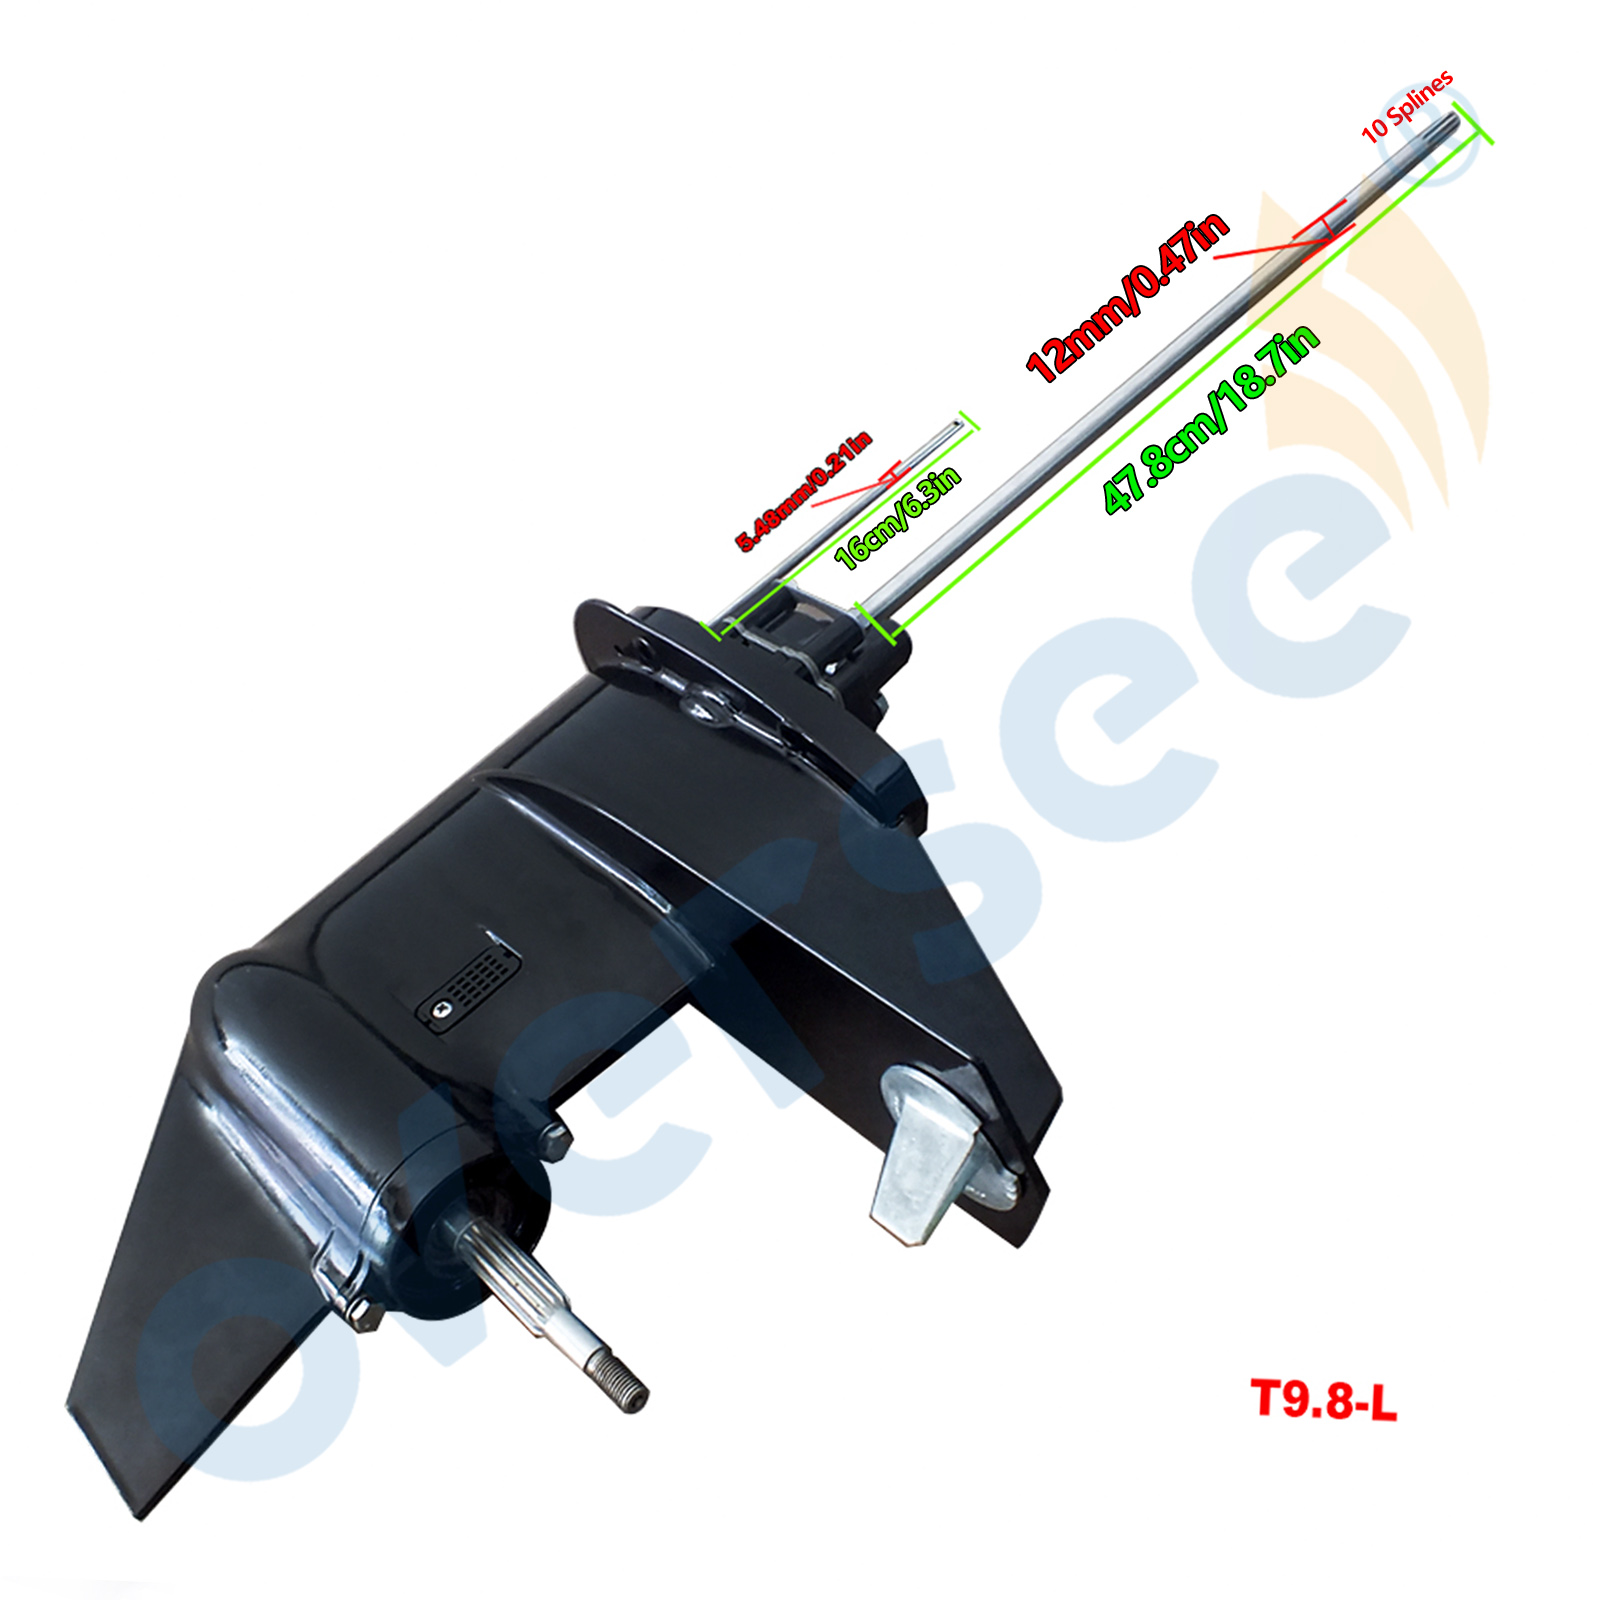 3B2S87302-0 Lower Unit Assy With Long Driver Shaft For Tohatsu 9.8HP 8HP 2 Stroke Outboard Motor Gear Box Assy Parsun HDX 9.8M